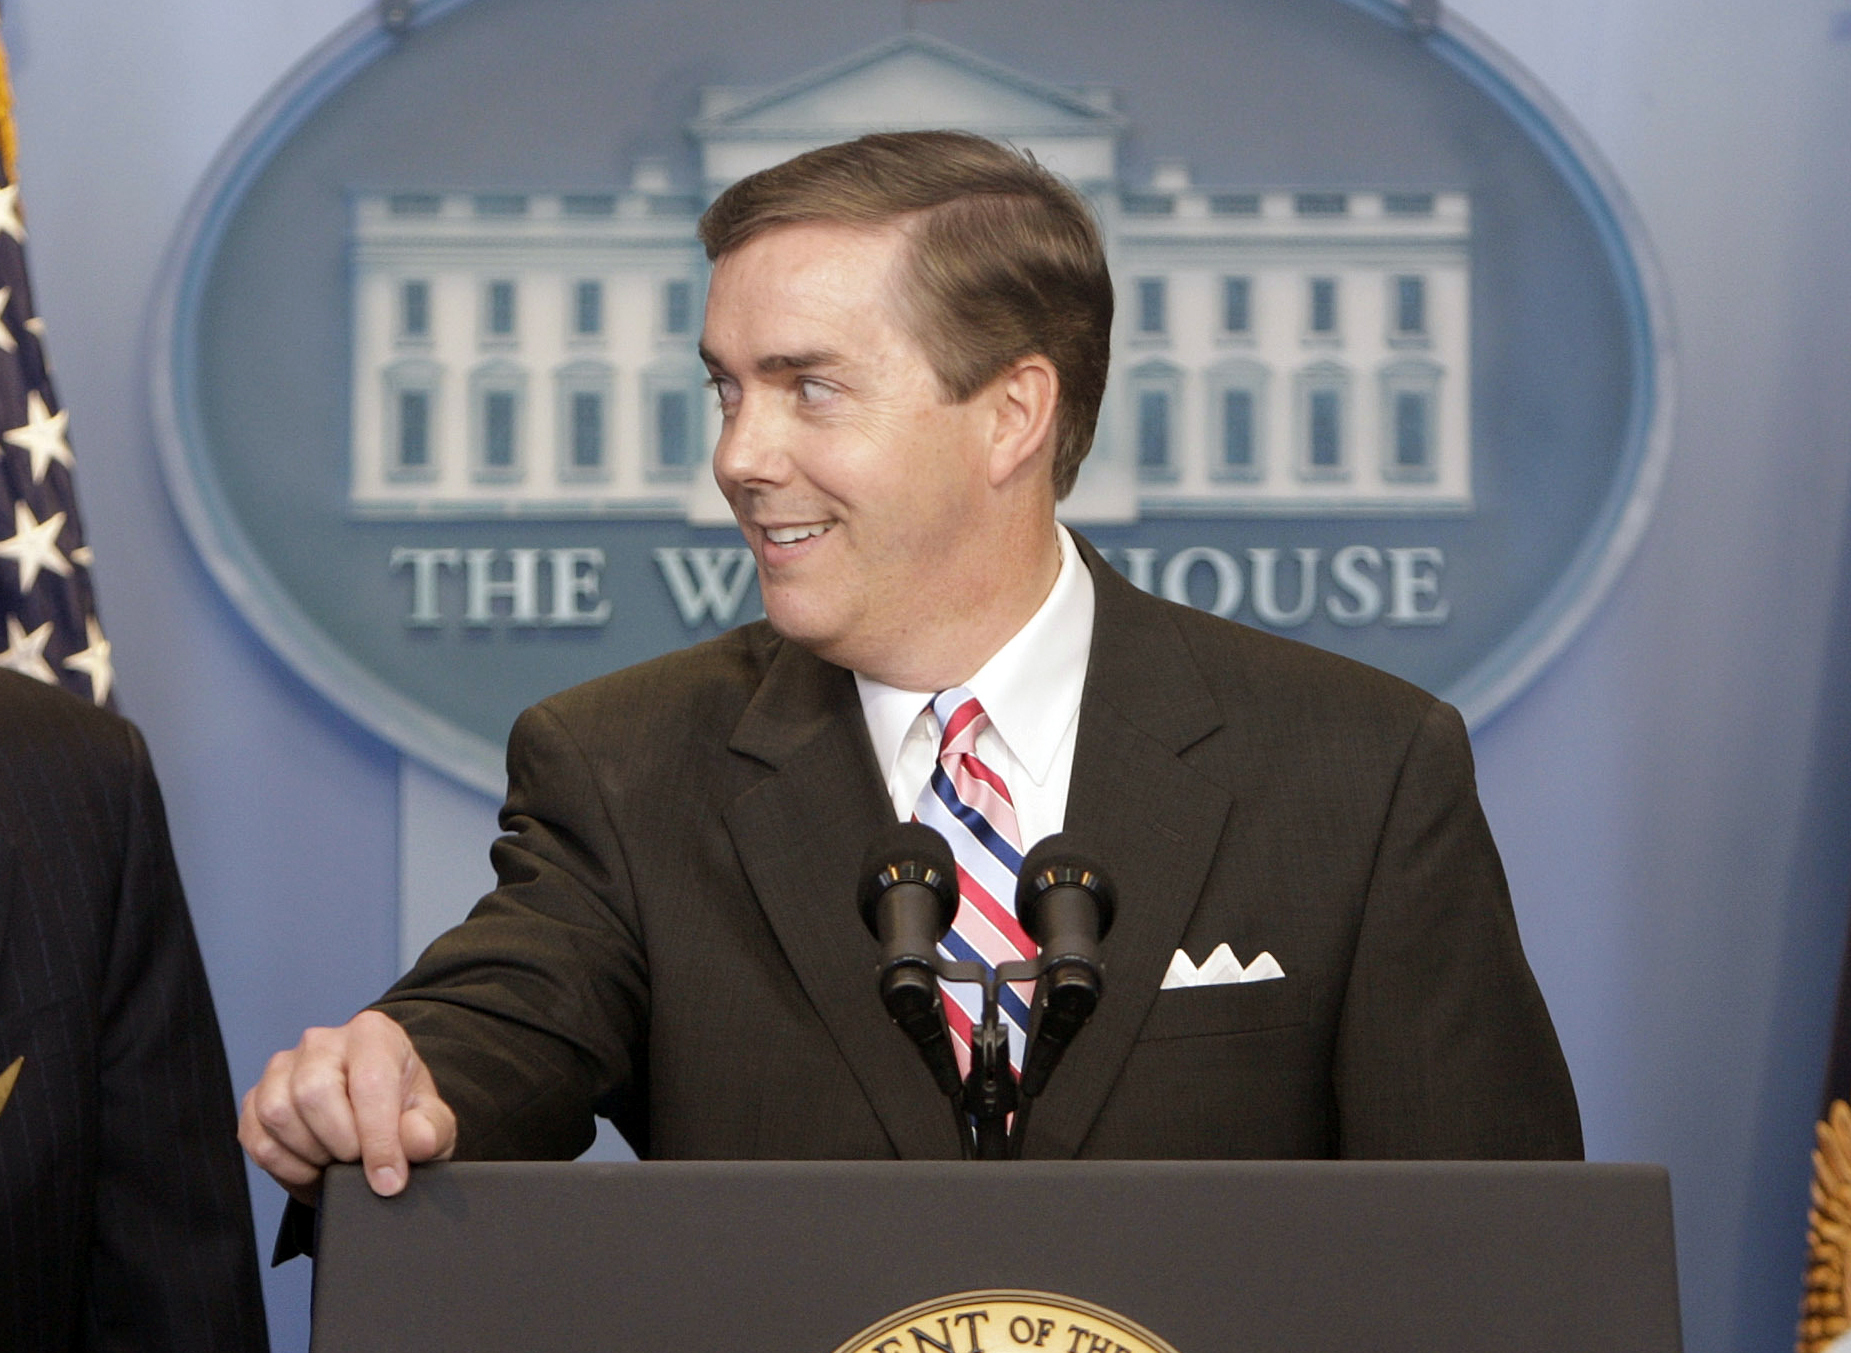 White House Correspondents Association President Steve Scully appears at a ribbon-cutting ceremony for the James S. Brady Press Briefing Room at the White House on July 11, 2007. (Ron Edmonds/Associated Press)